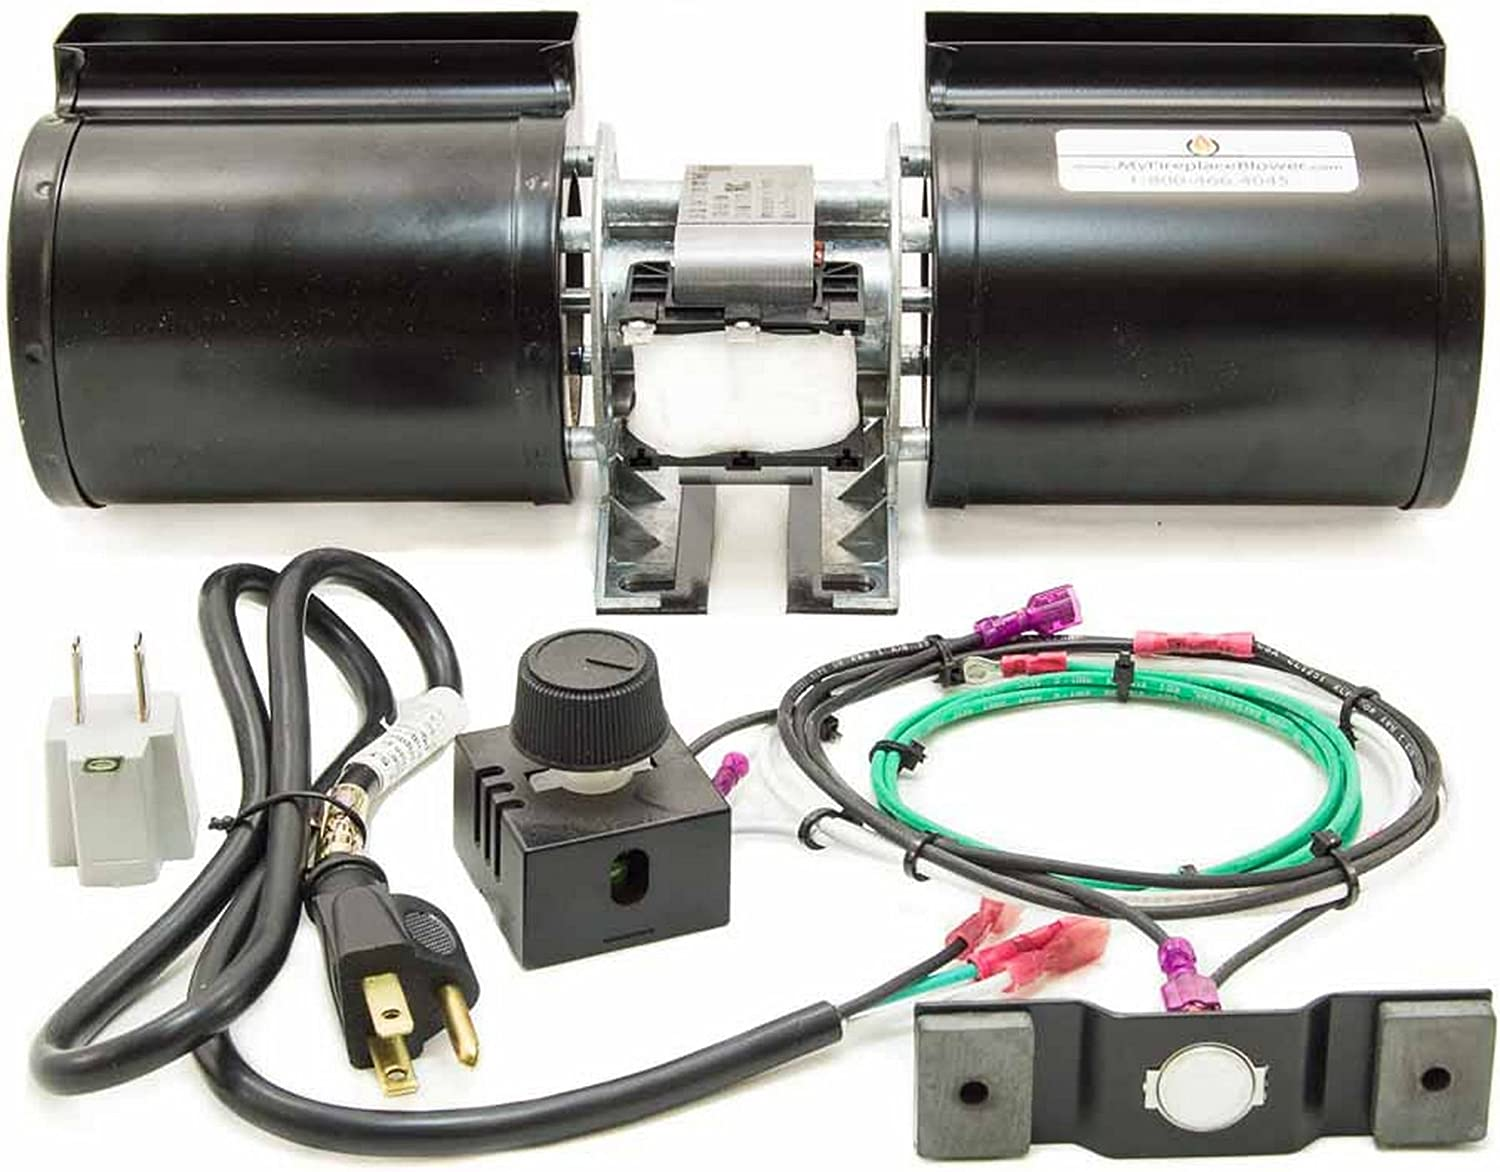 GFK-160 GFK-160A Fireplace Blower Kit for Heat N Glo Hearth and Home Quadra Fire